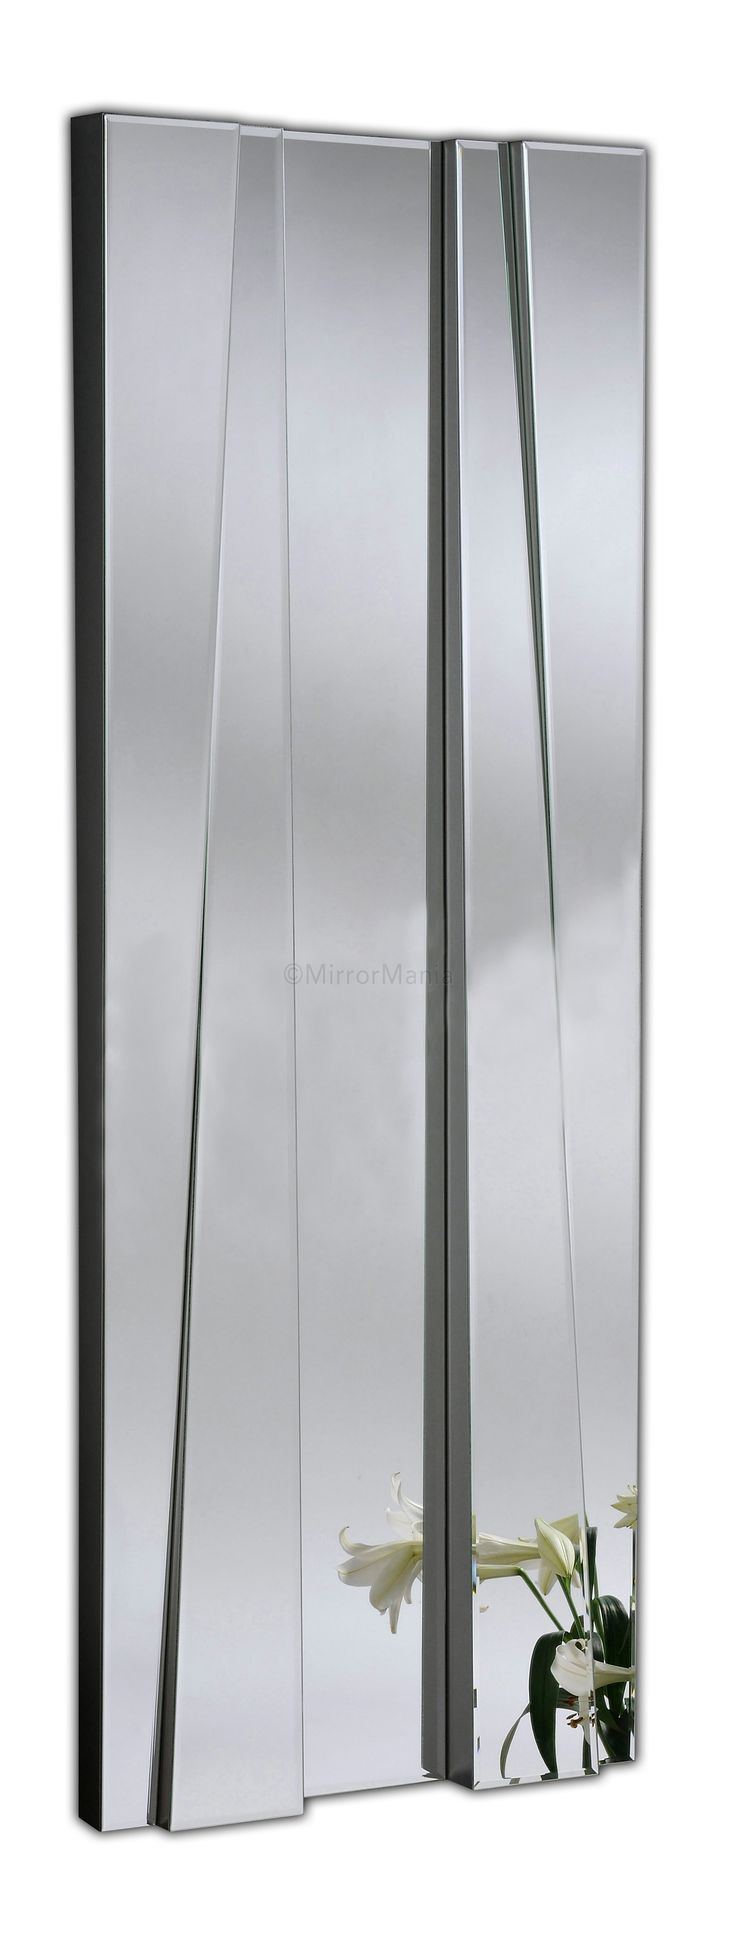 10 Best Ideas About Handmade Full Length Mirrors On